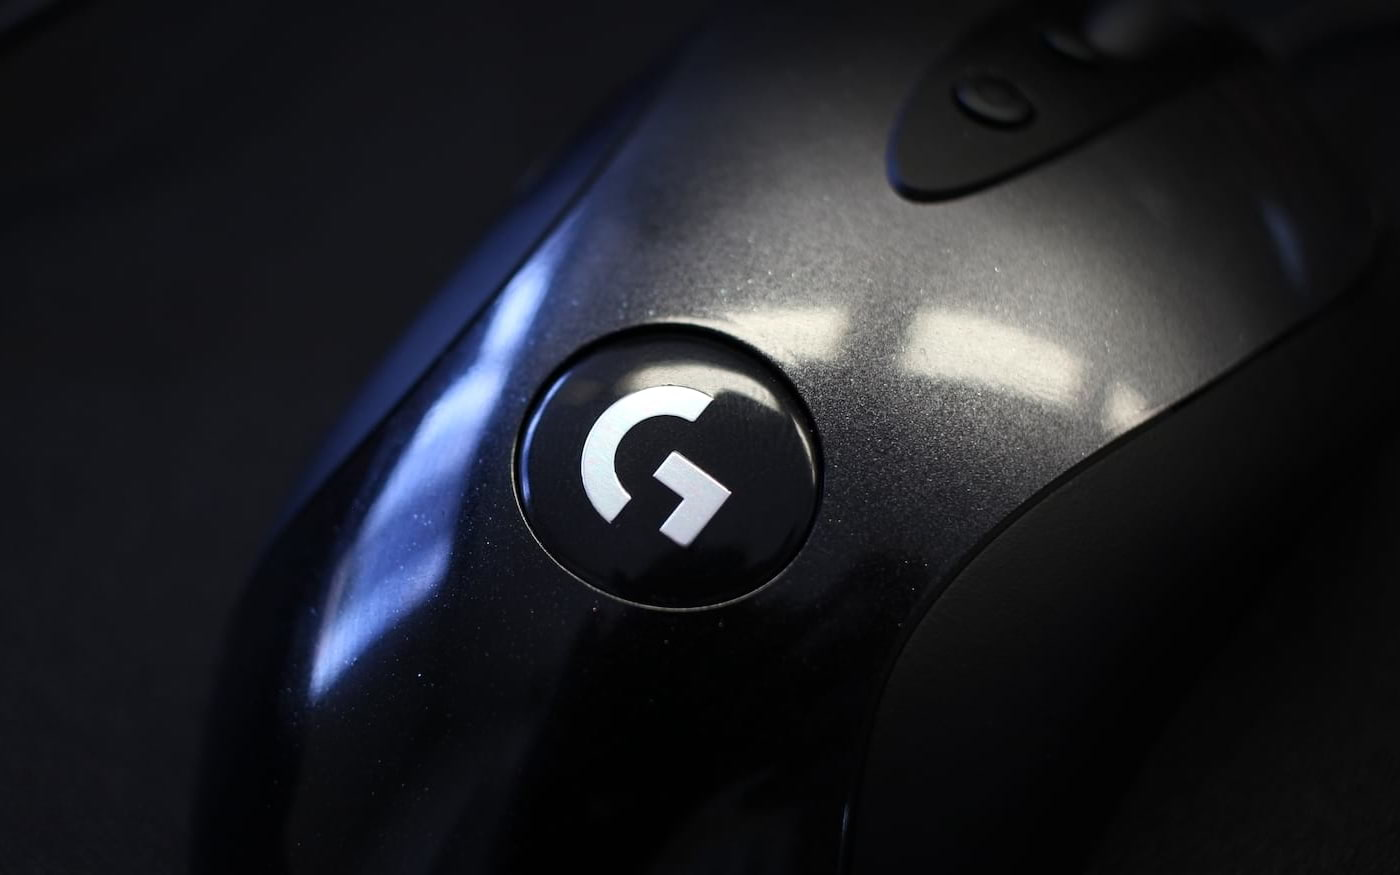 Review Logitech MX518 Hero | Ressuscitando uma lenda